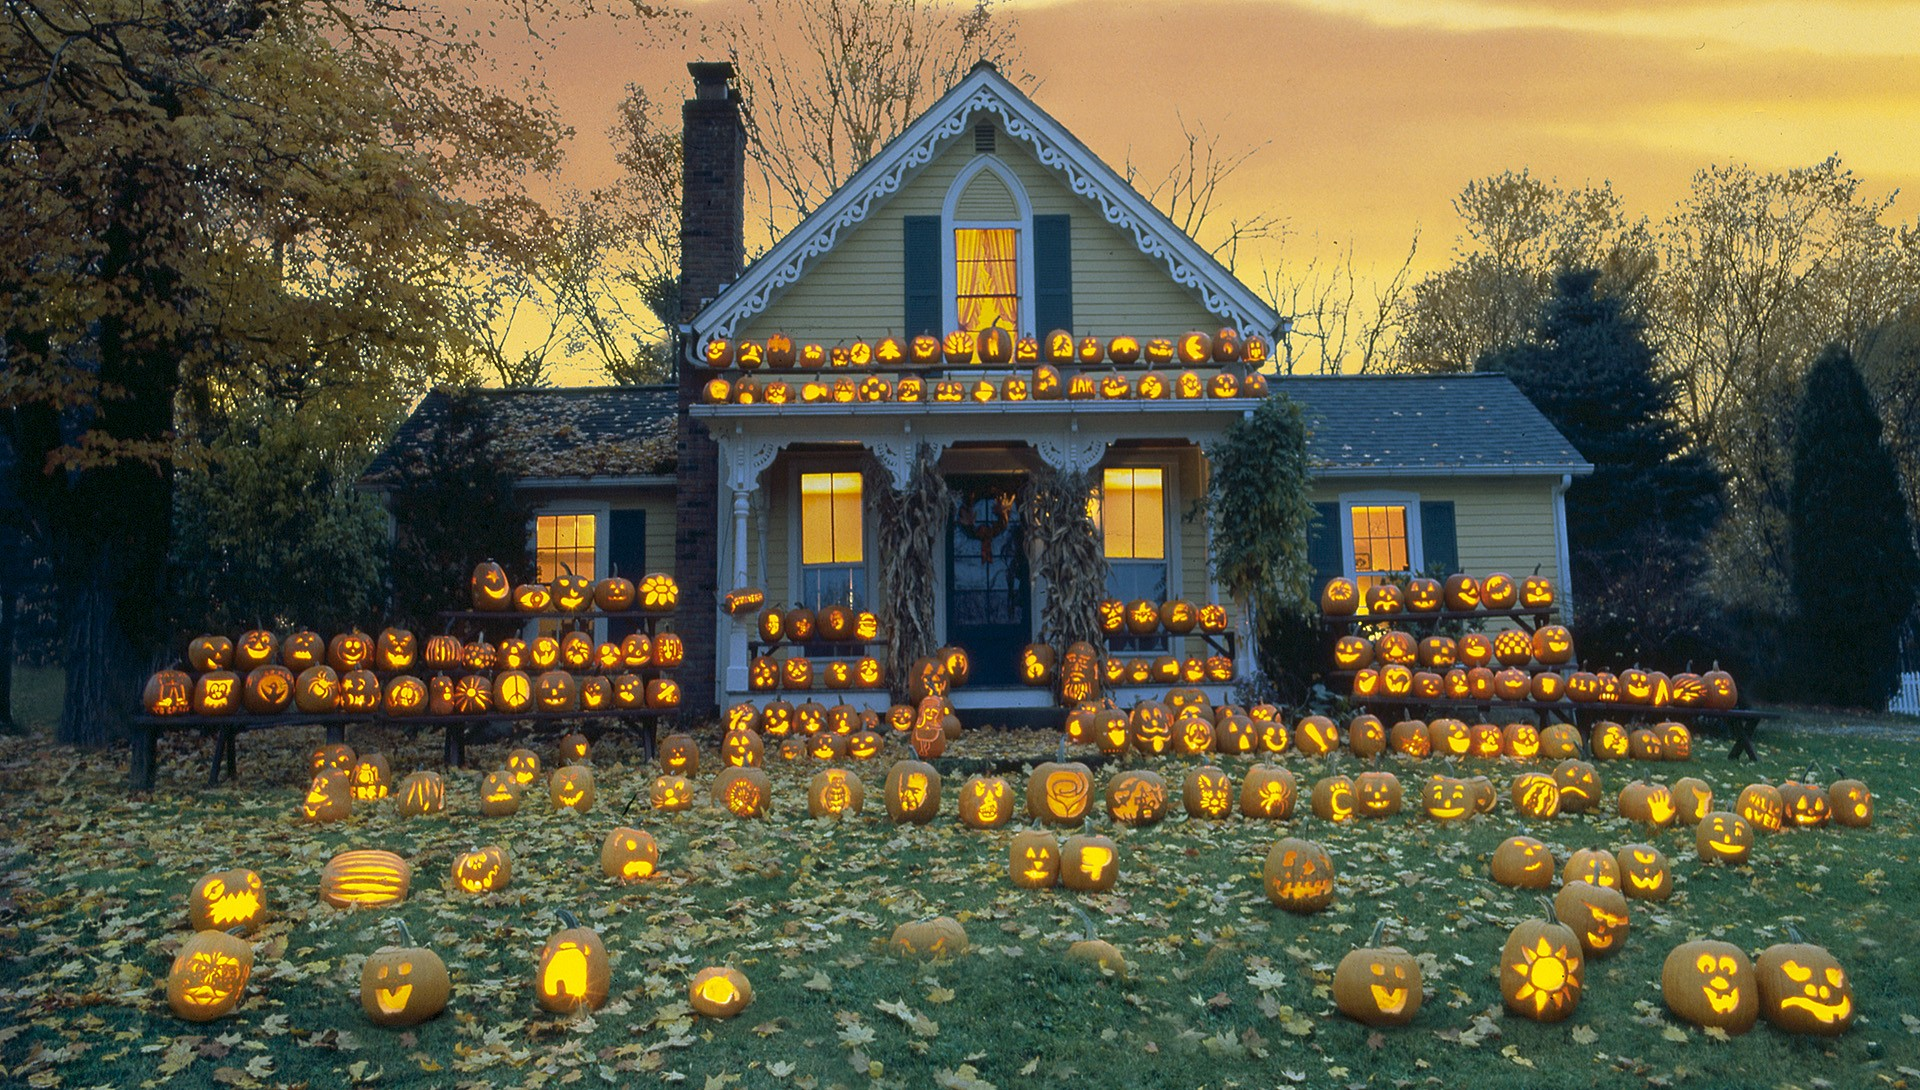 Fall Wallpaper With Pumpkins Halloween House Hd Wallpaper Background Image